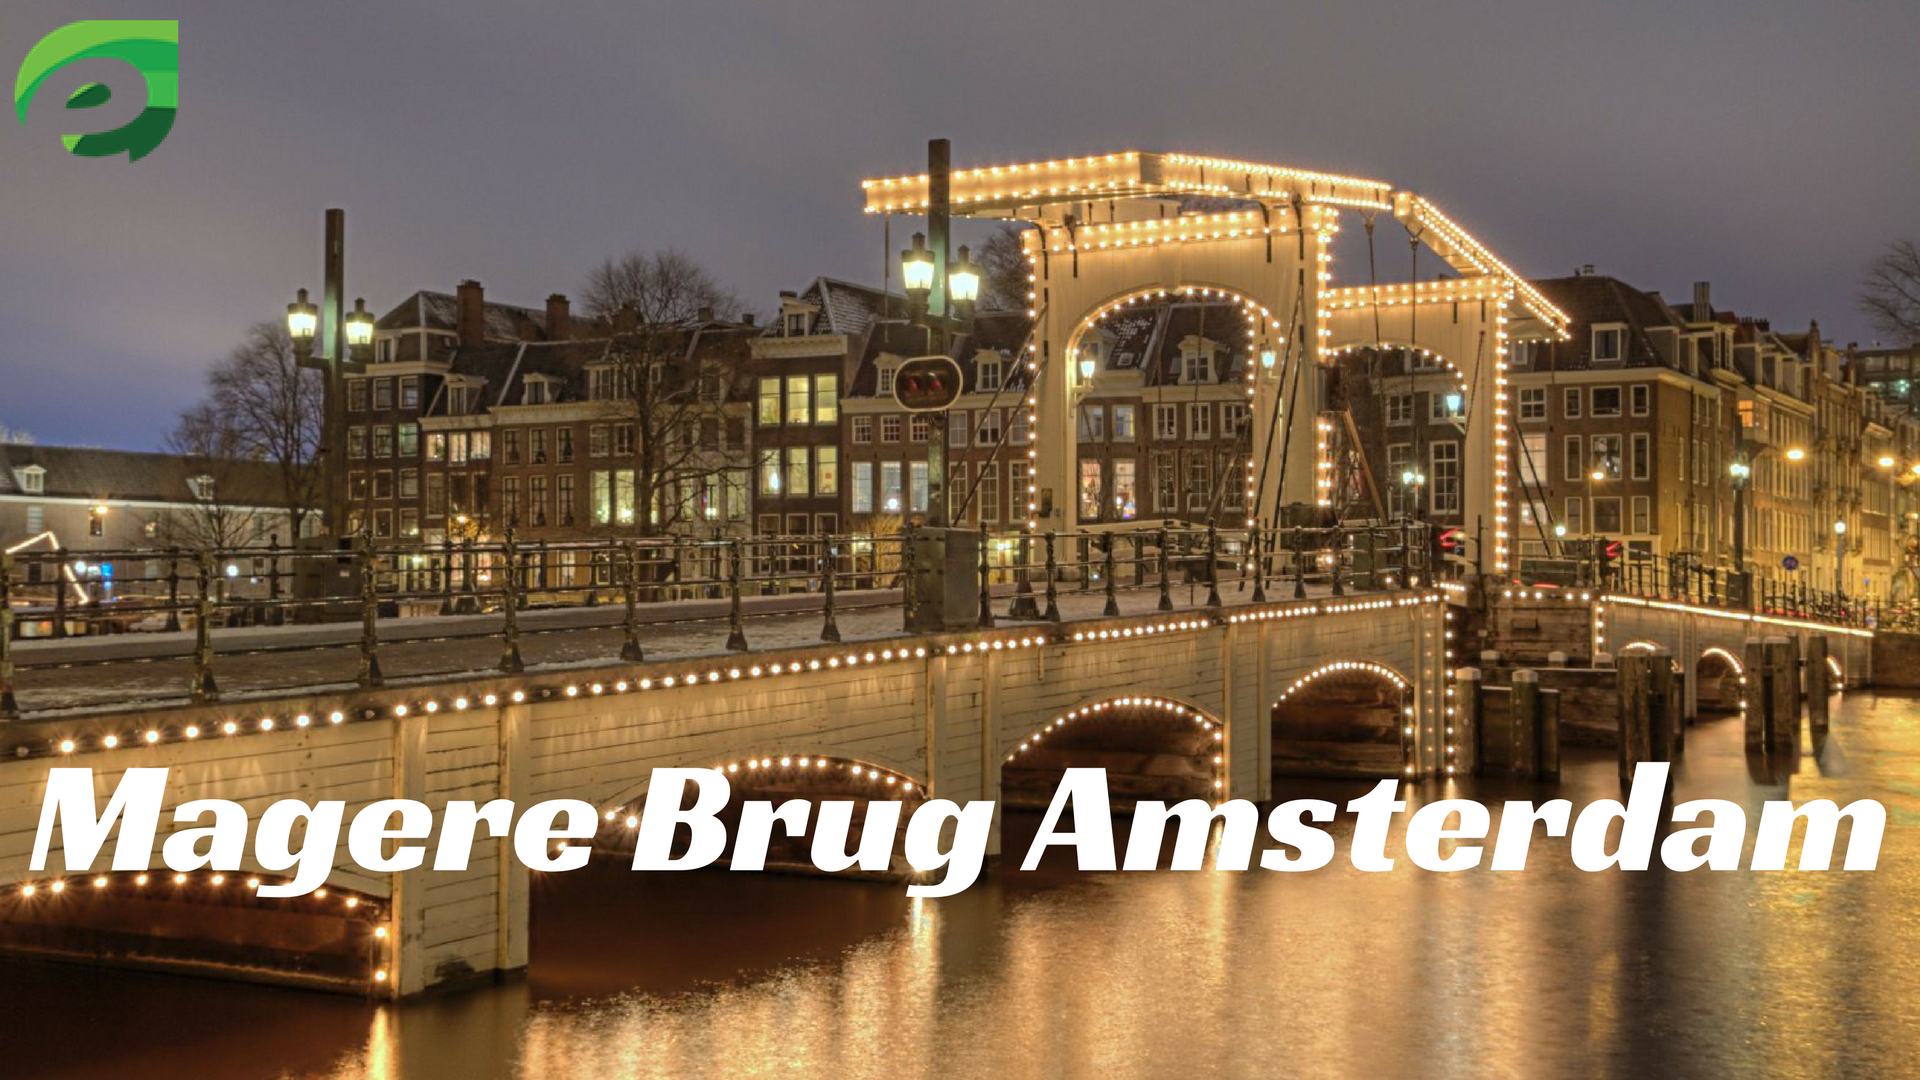 16 Places To Visit In Amsterdam- Magere brug